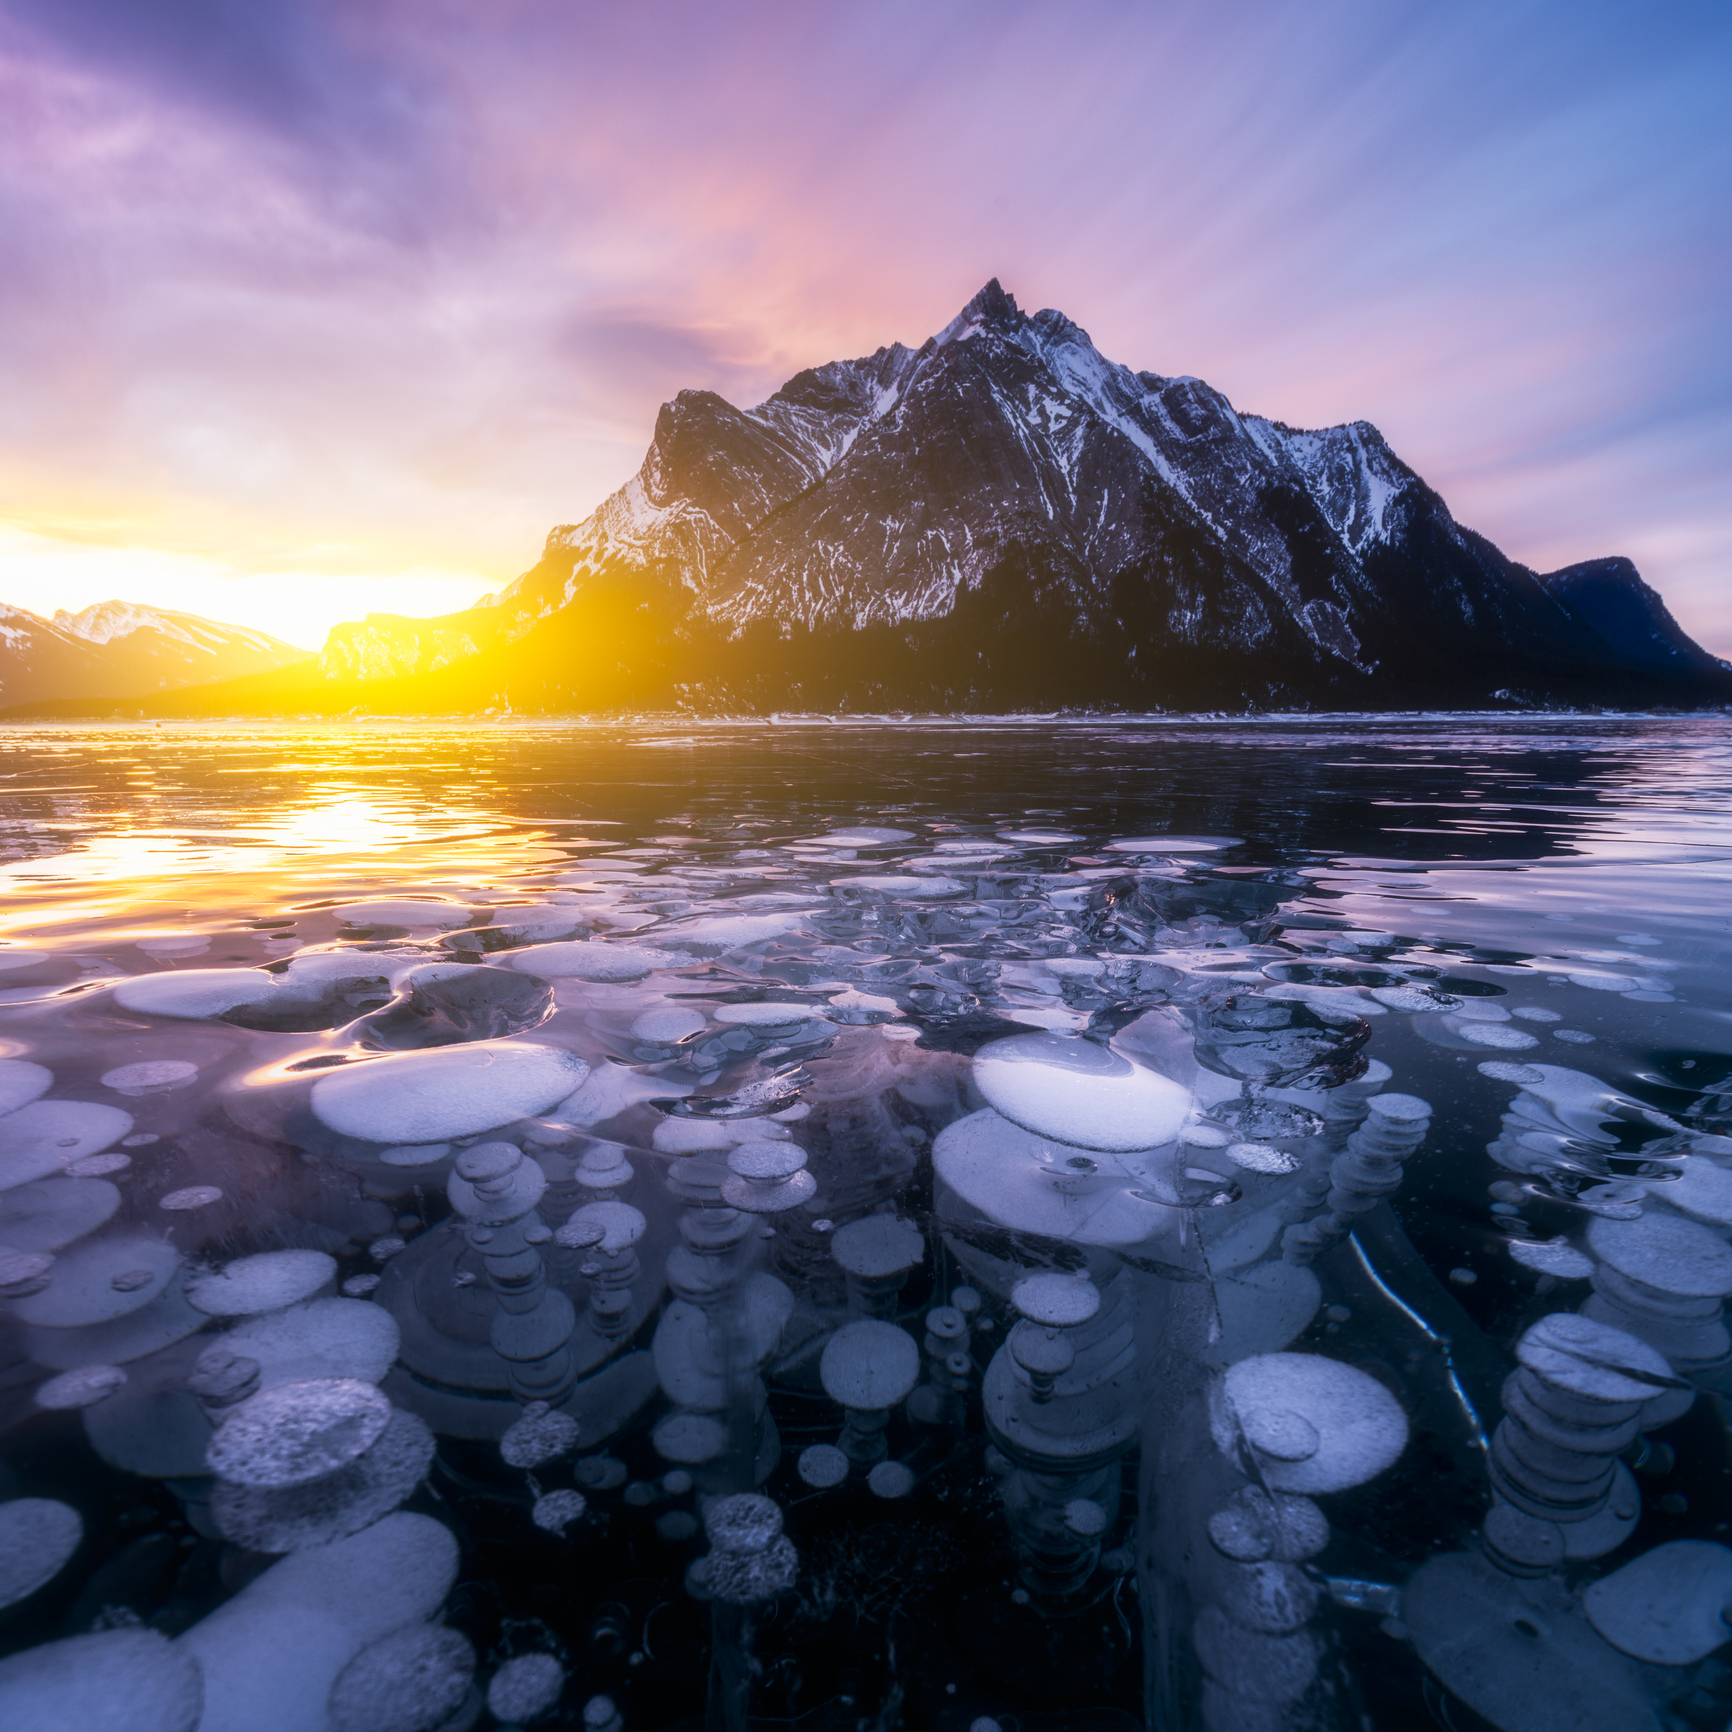 methane bubbles trapped in ice in Abraham Lake in sunrise in winter, AB, Canada.